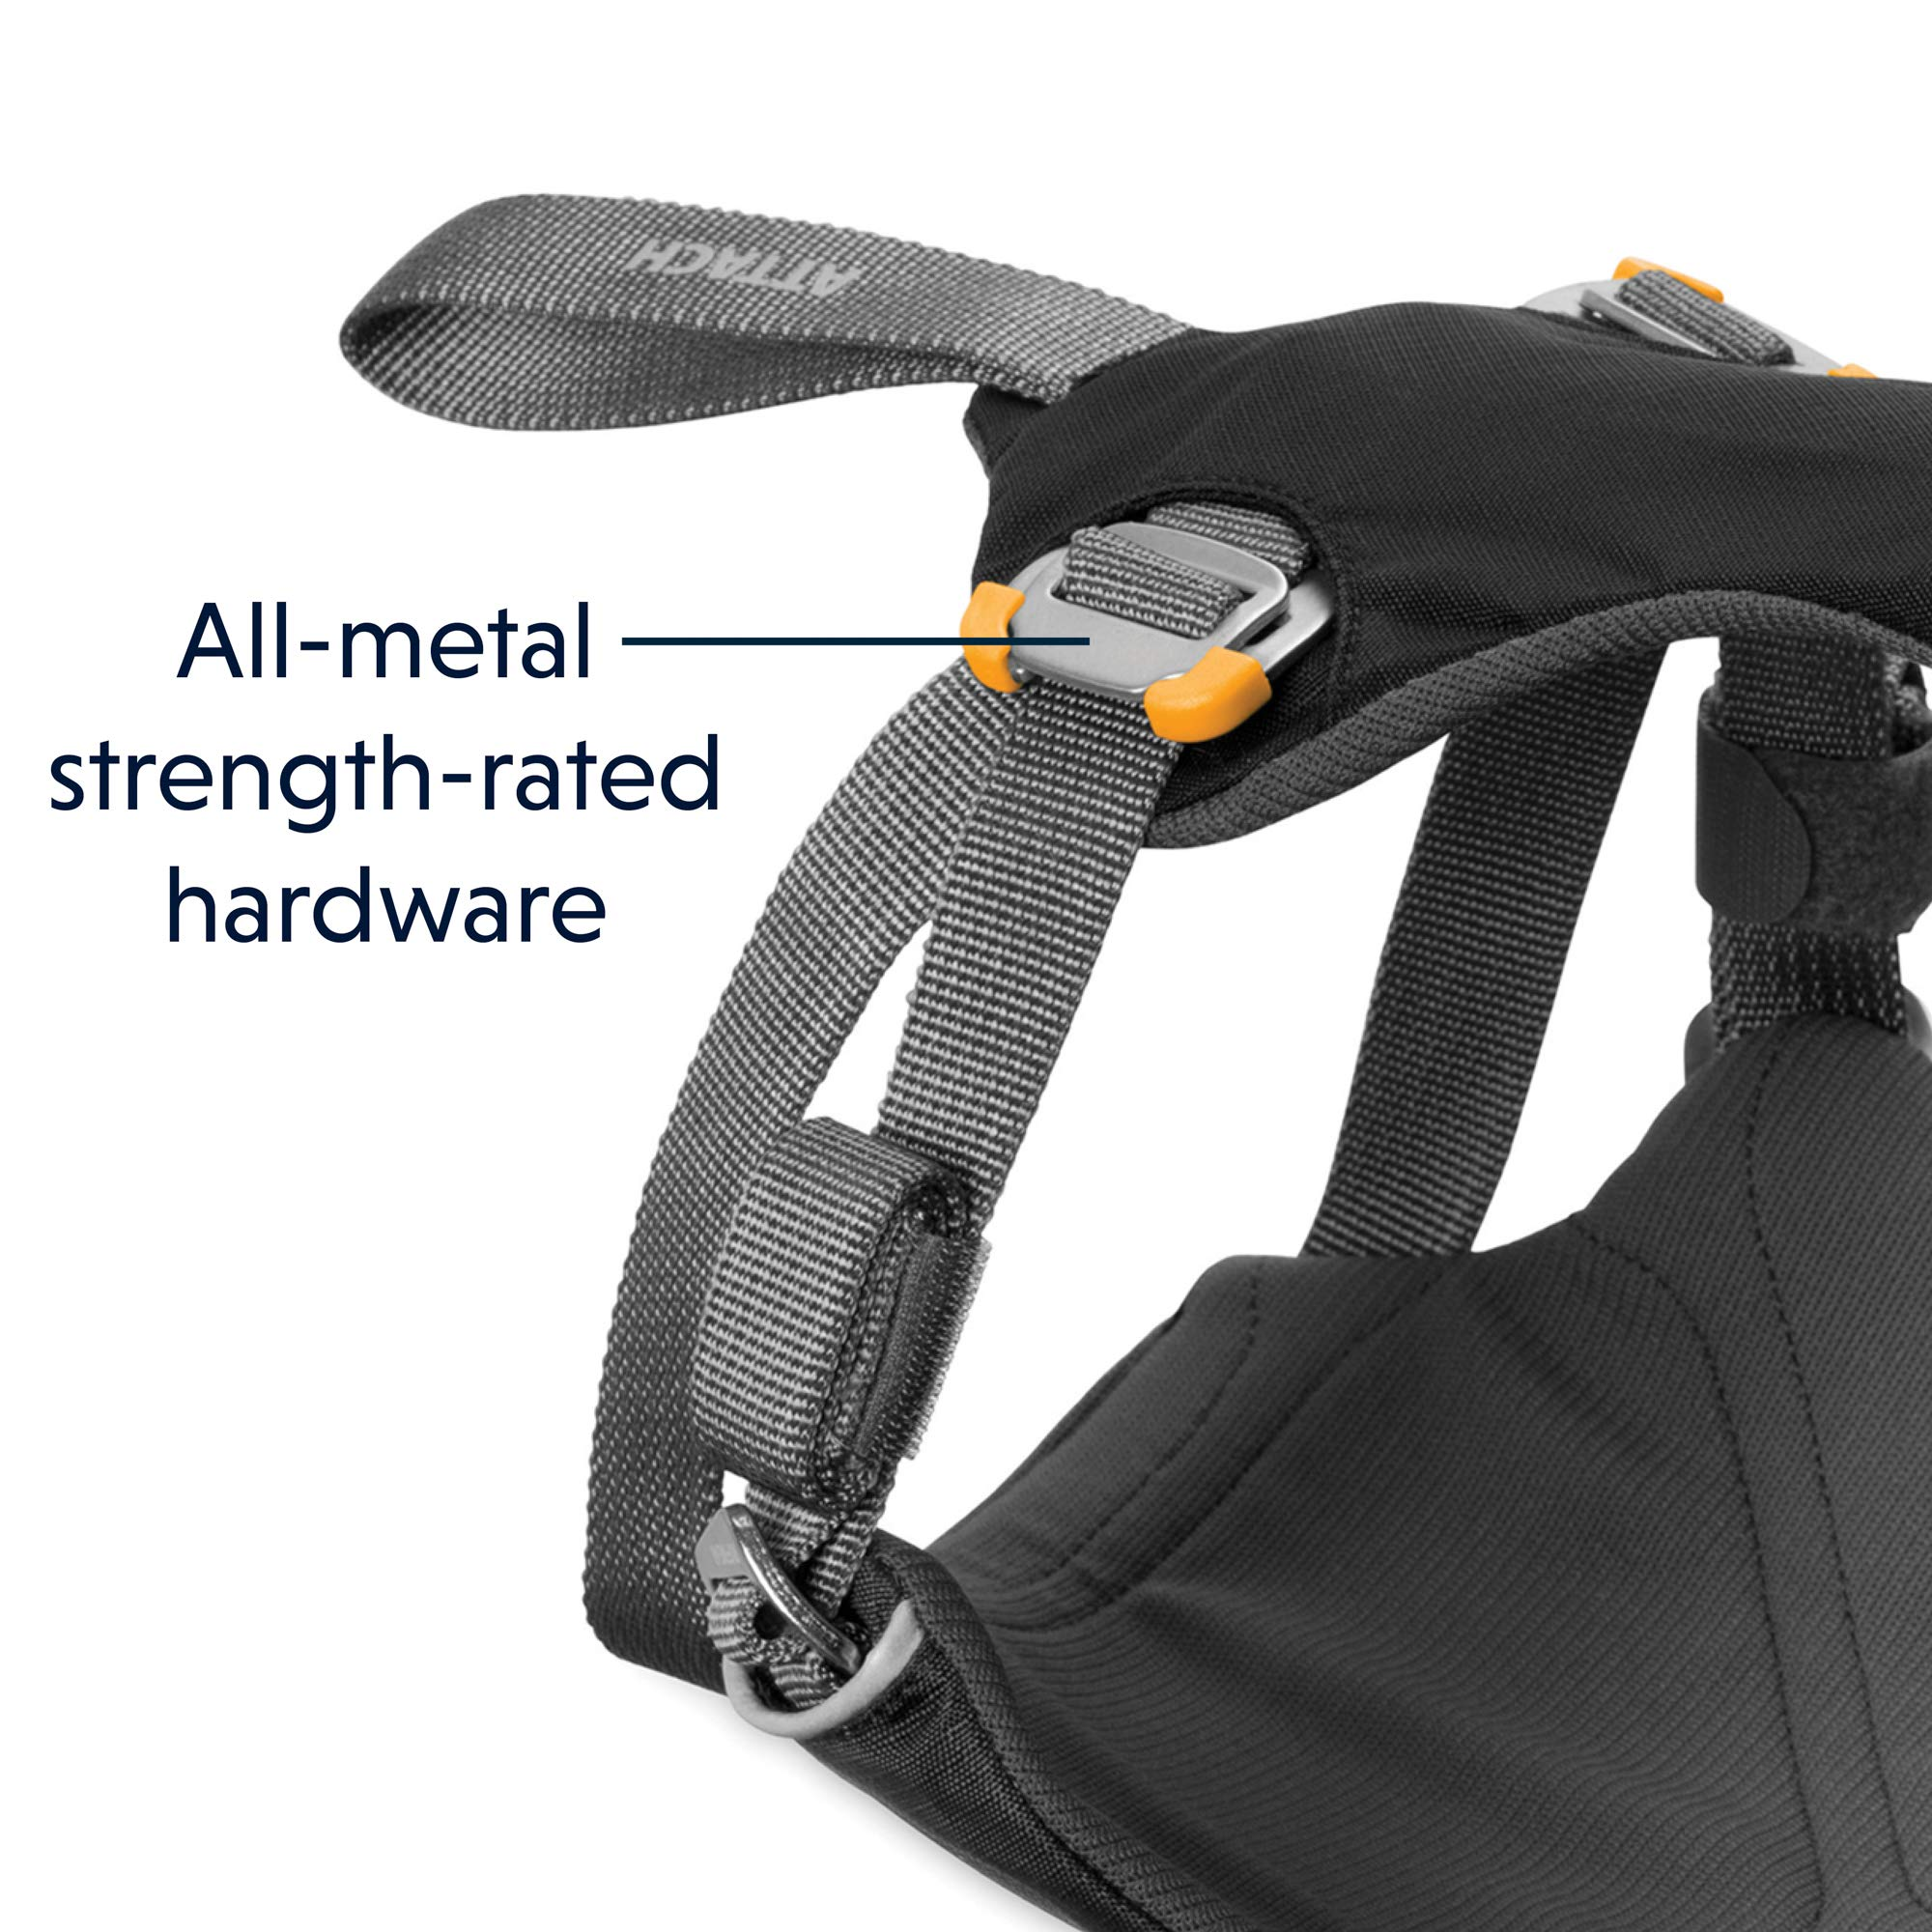 RUFFWEAR - Load Up, Dog Car Harness with Strength-Rated Hardware, Secure Vehicle Restraint, Universal Seat Belt Attachment, Obsidian Black, Medium by RUFFWEAR (Image #5)